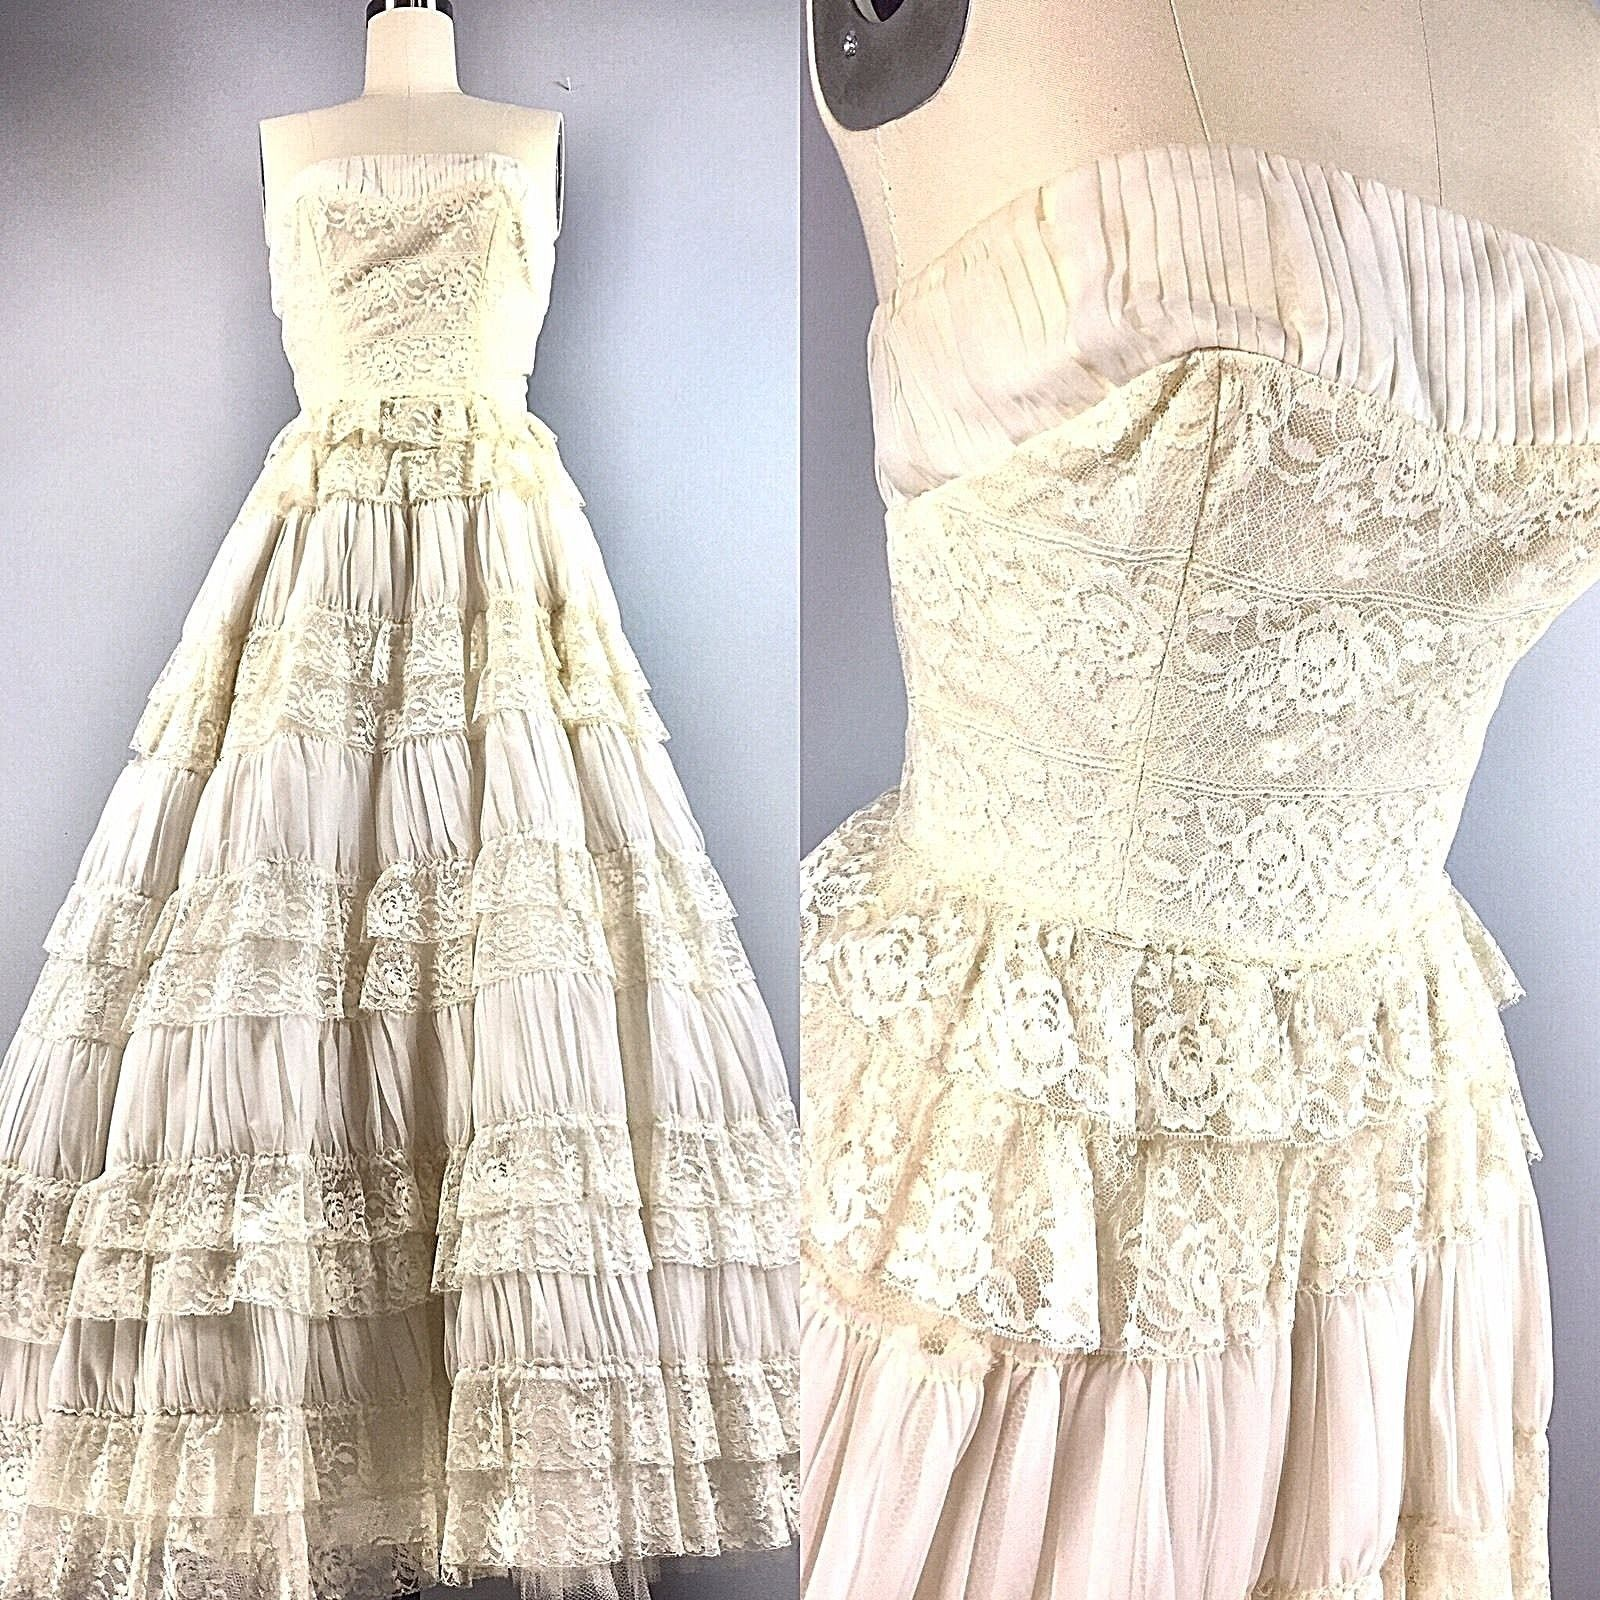 125a776f8e5 Vintage 50s Dress Bridal Wedding Cupcake Ball Gown Lace Ruffles Tiered 32  Bust